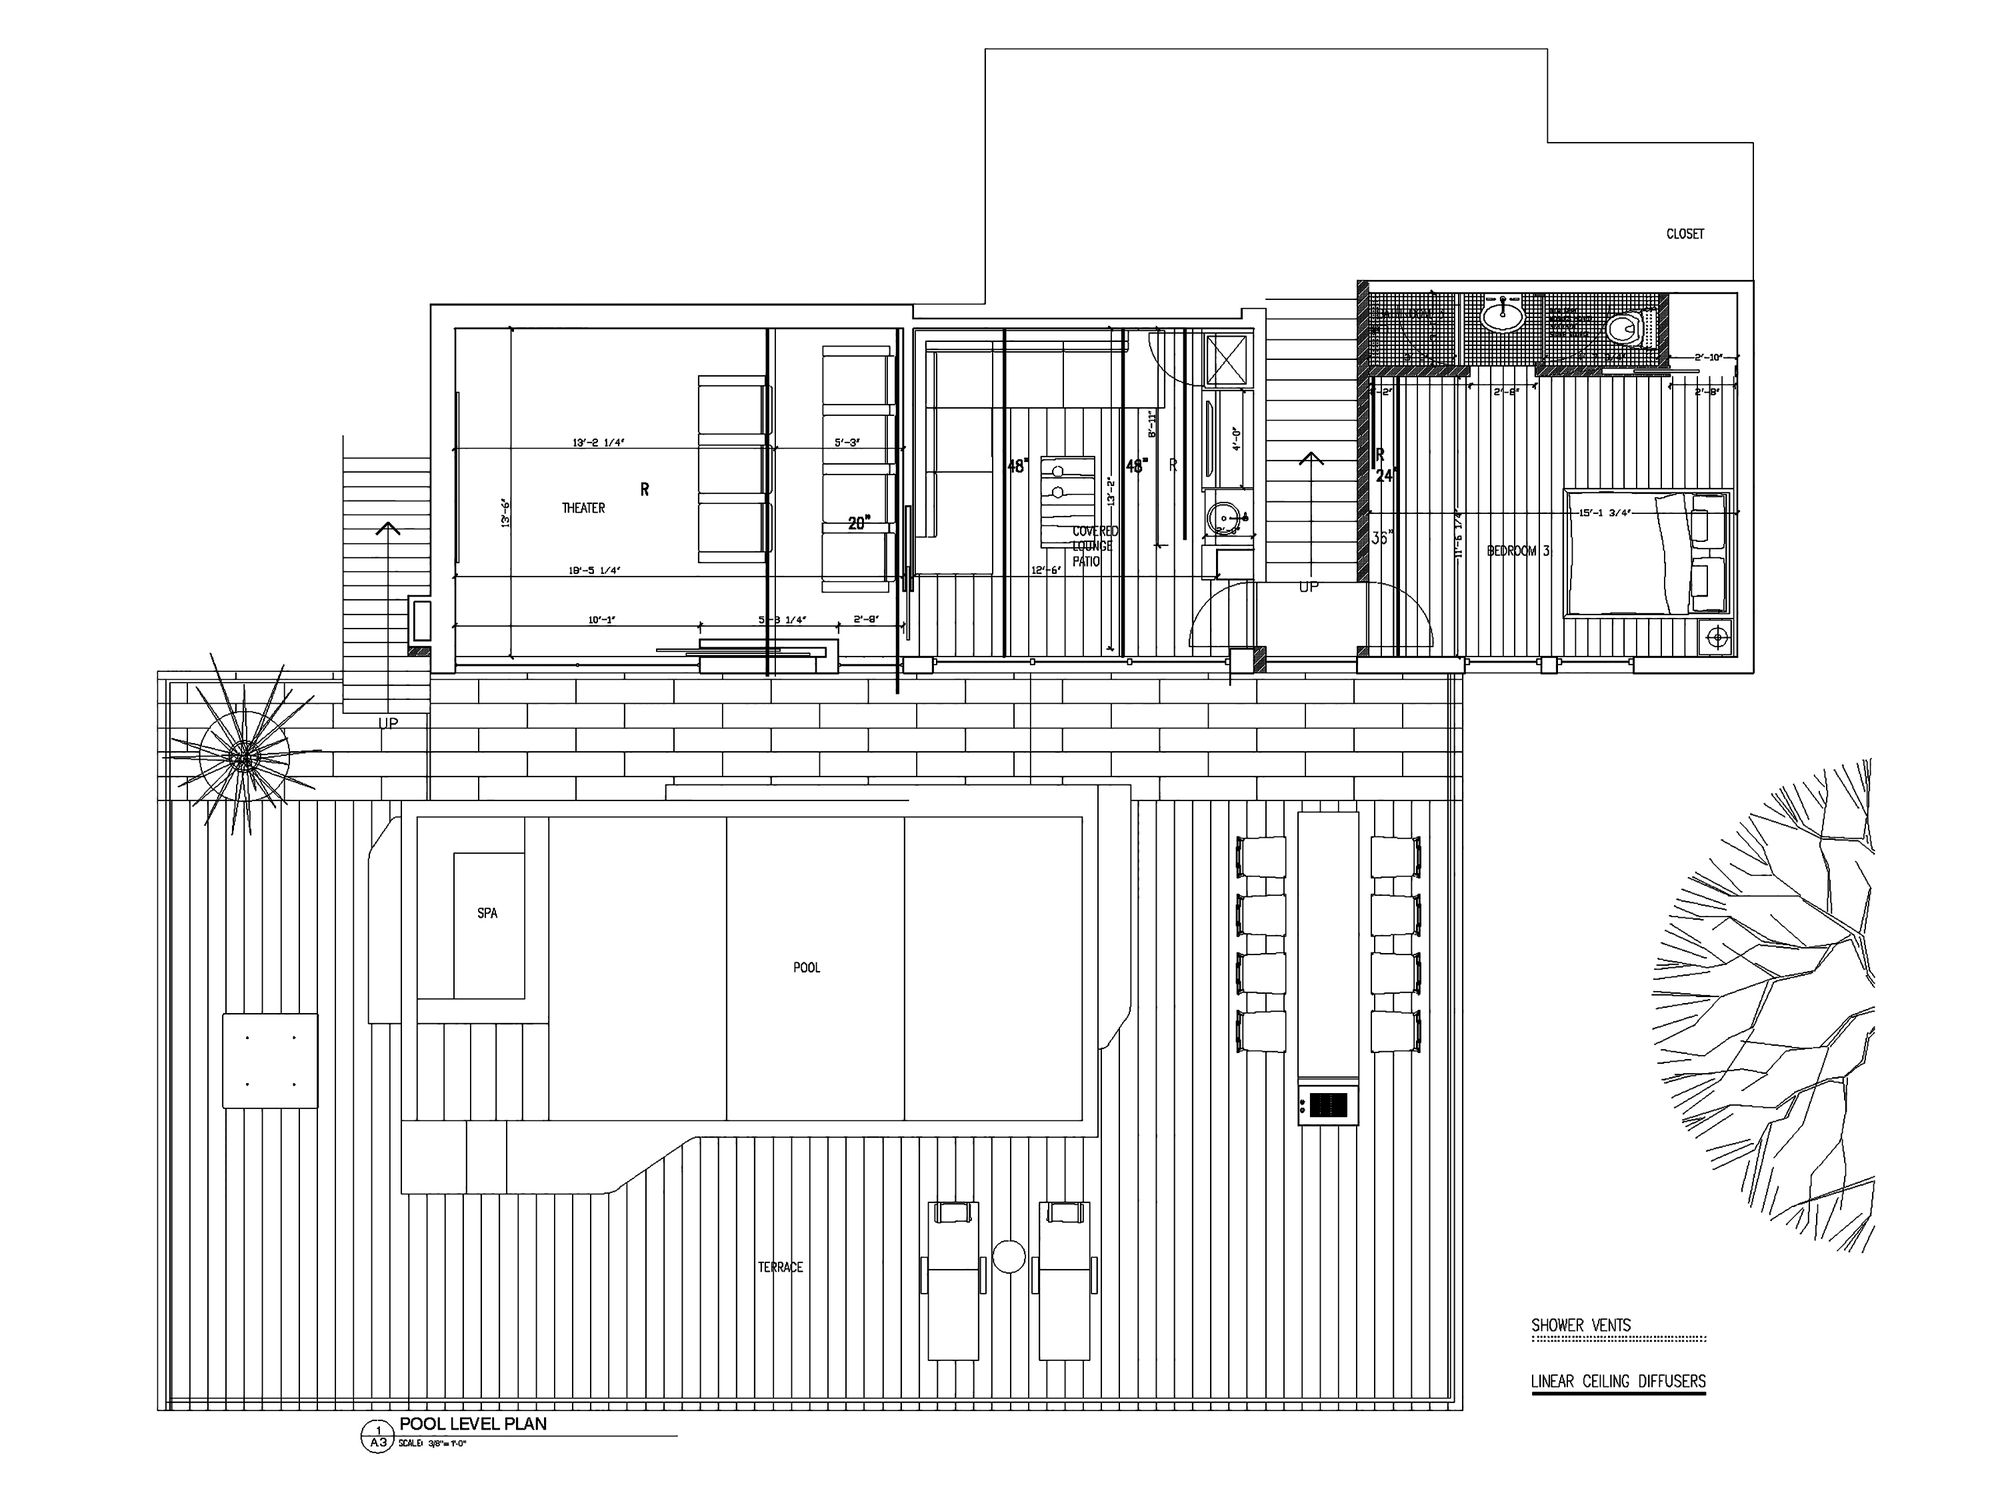 Gallery Of Sunset Plaza Drive Gwdesign 25 Floor Plans House Plans How To Plan